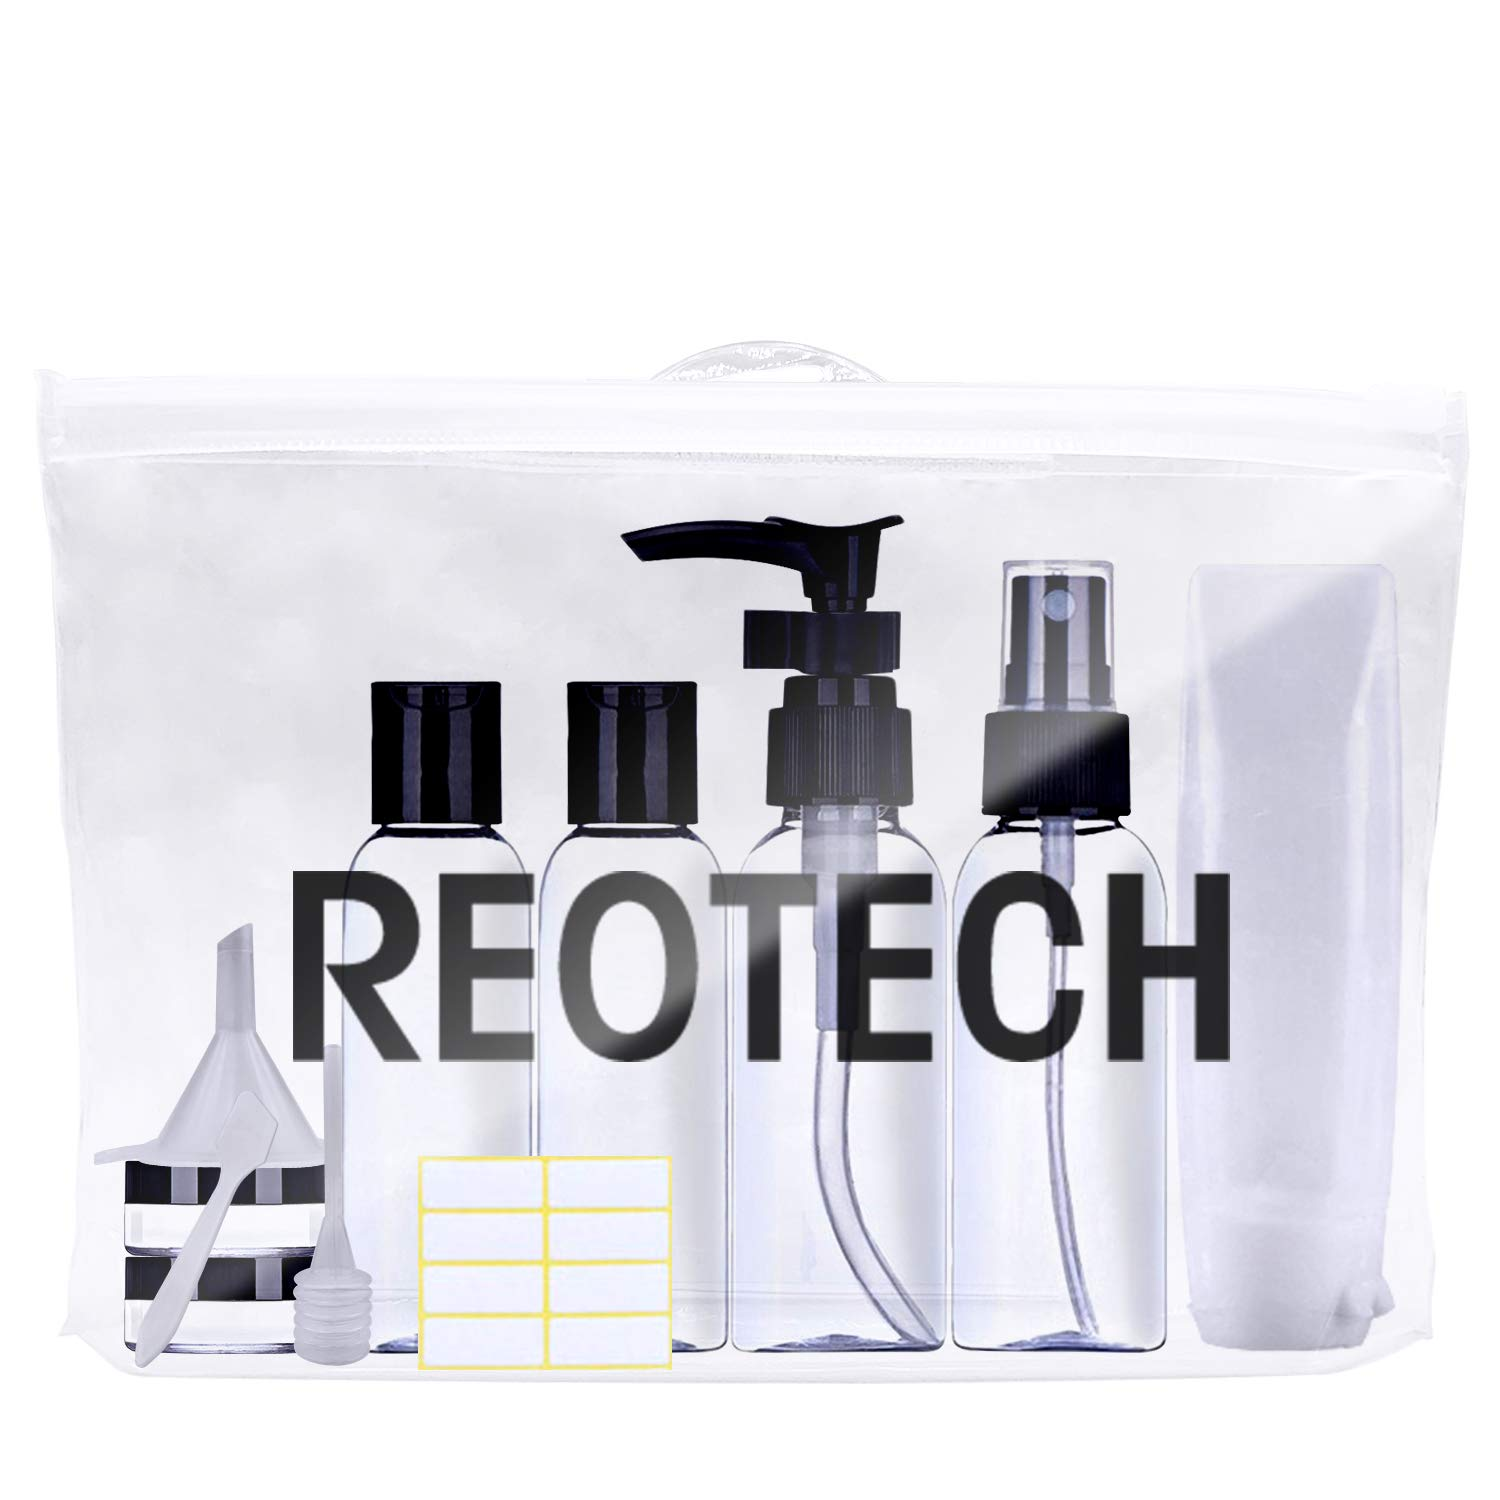 REOTECH Travel Bottles TSA Approved Toiletry Bag Clear Quart Size with Leak-Proof Travel Accessories Refillable Containers for Liquids 3-1-1 Carry-On Luggage Compliant for Airplane – Woman Man